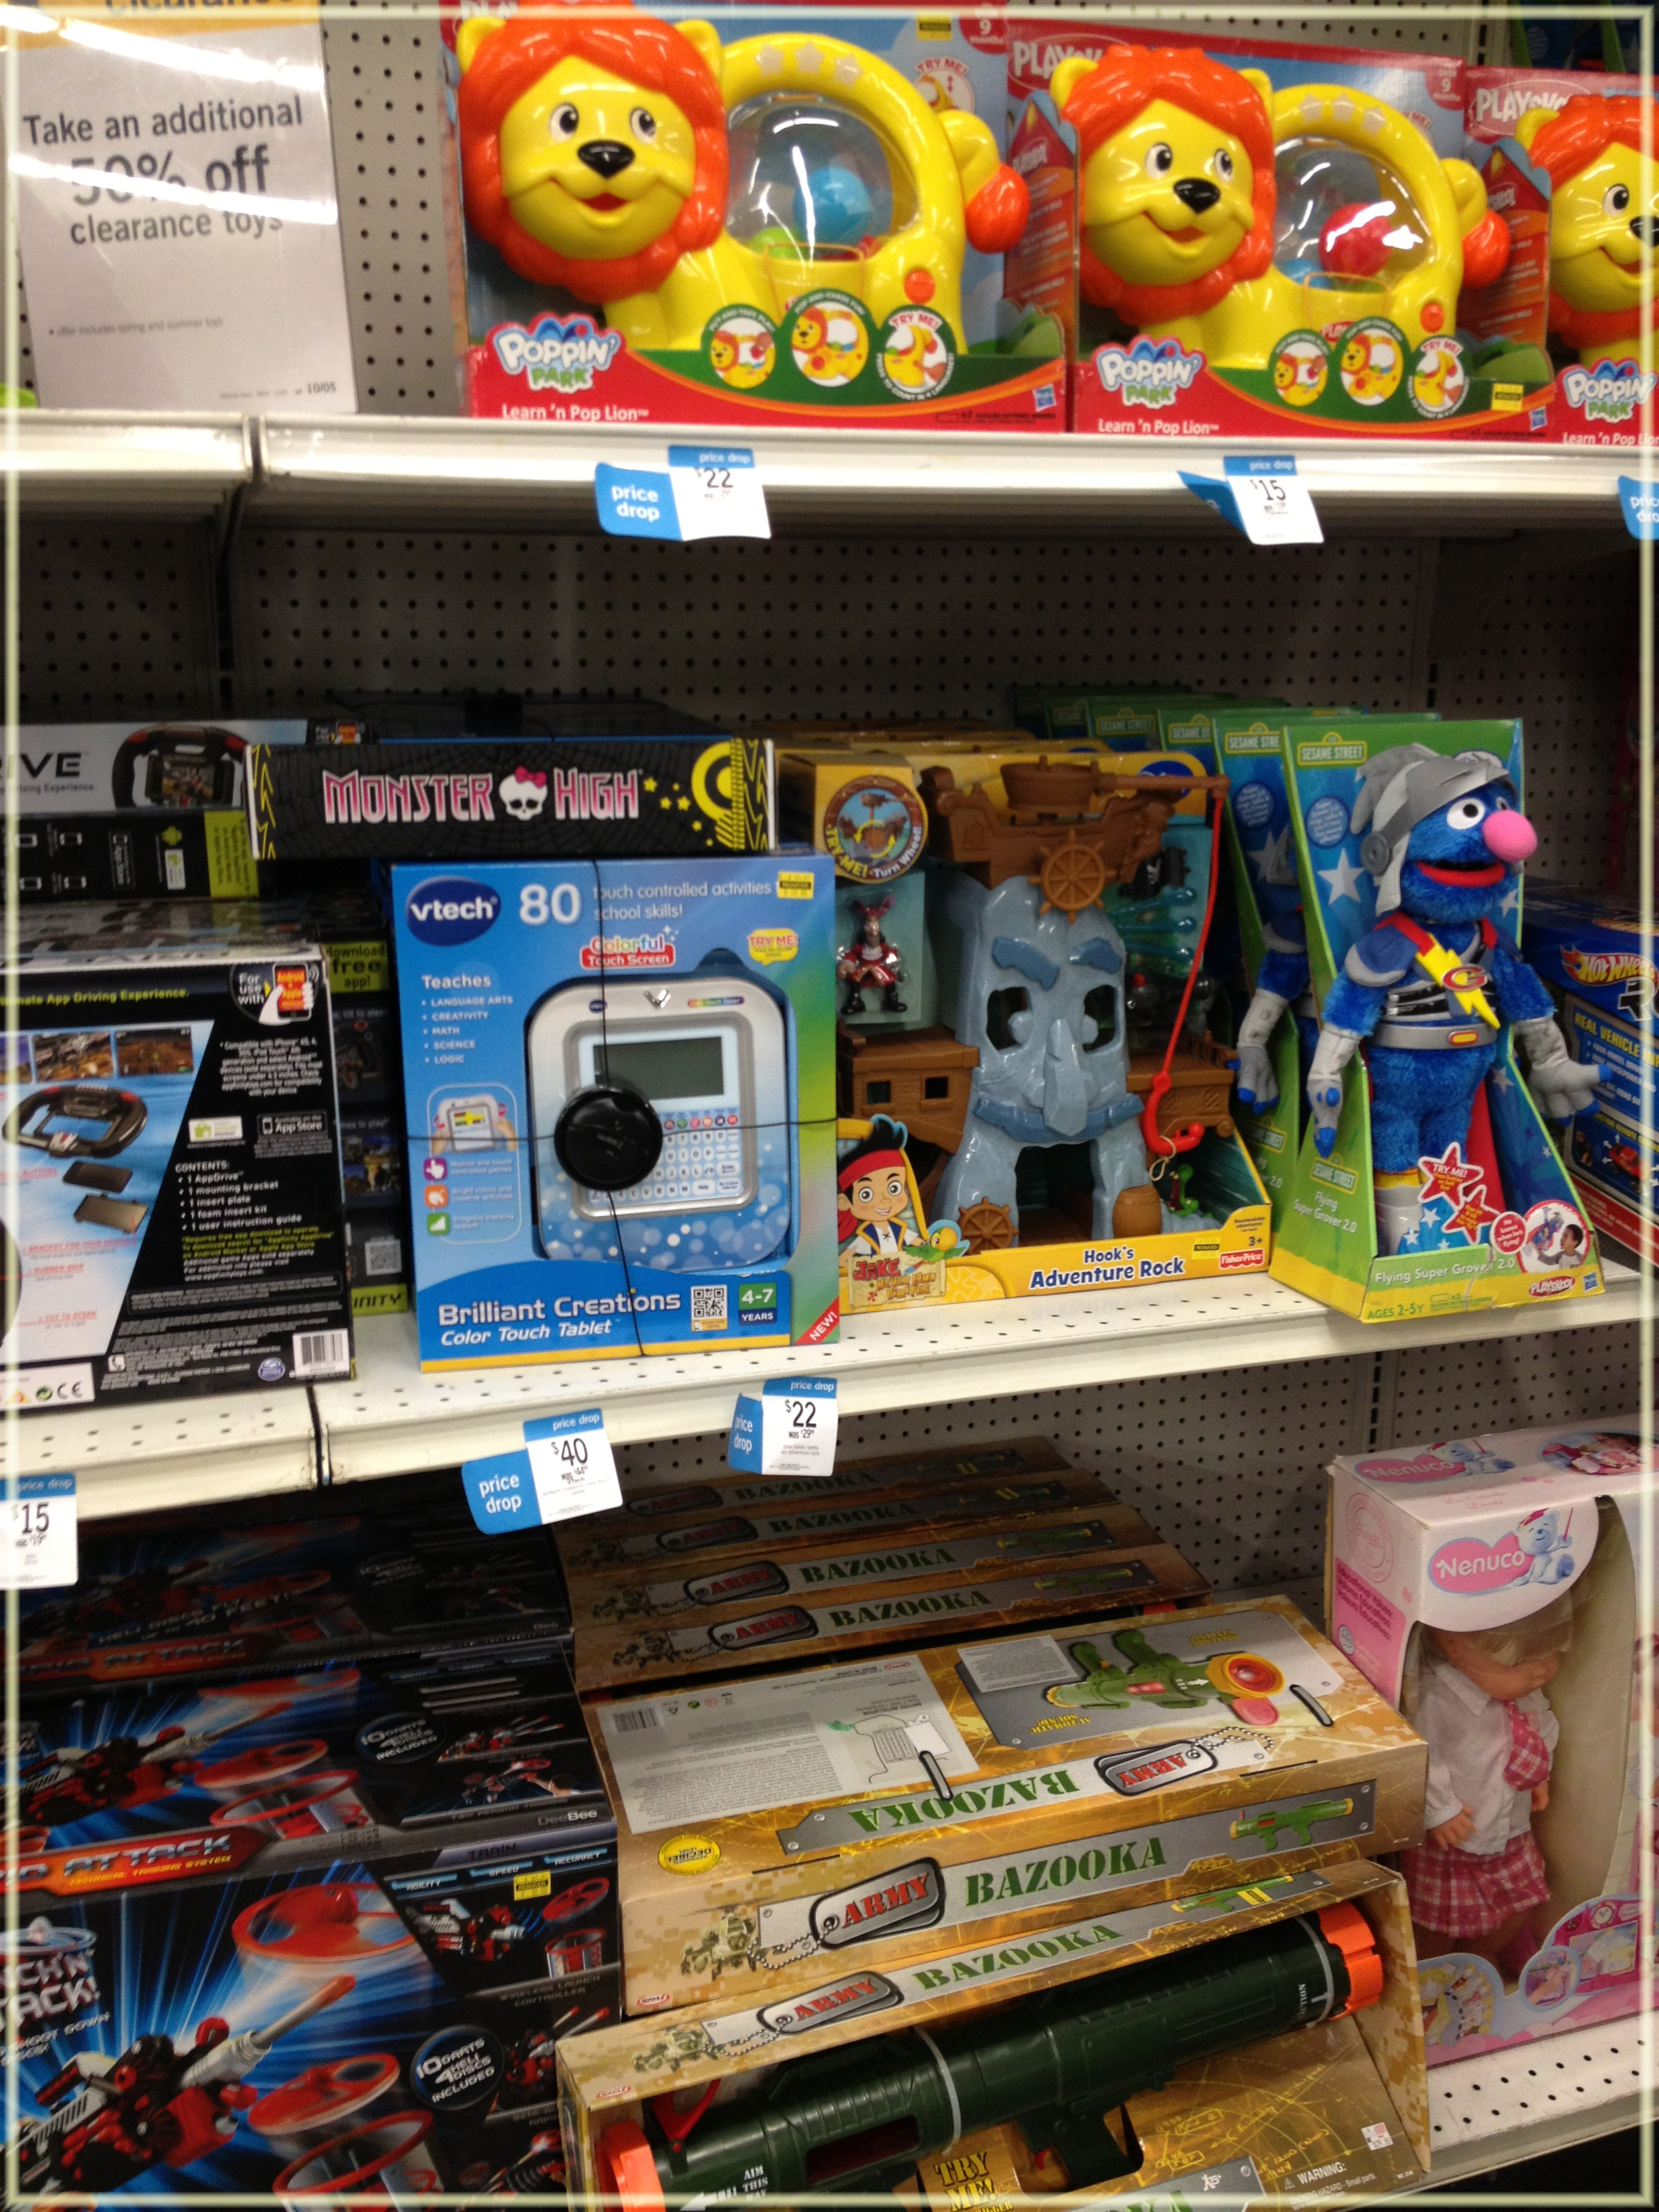 Kmart Additional 50% off Clearance Toys Great Buys